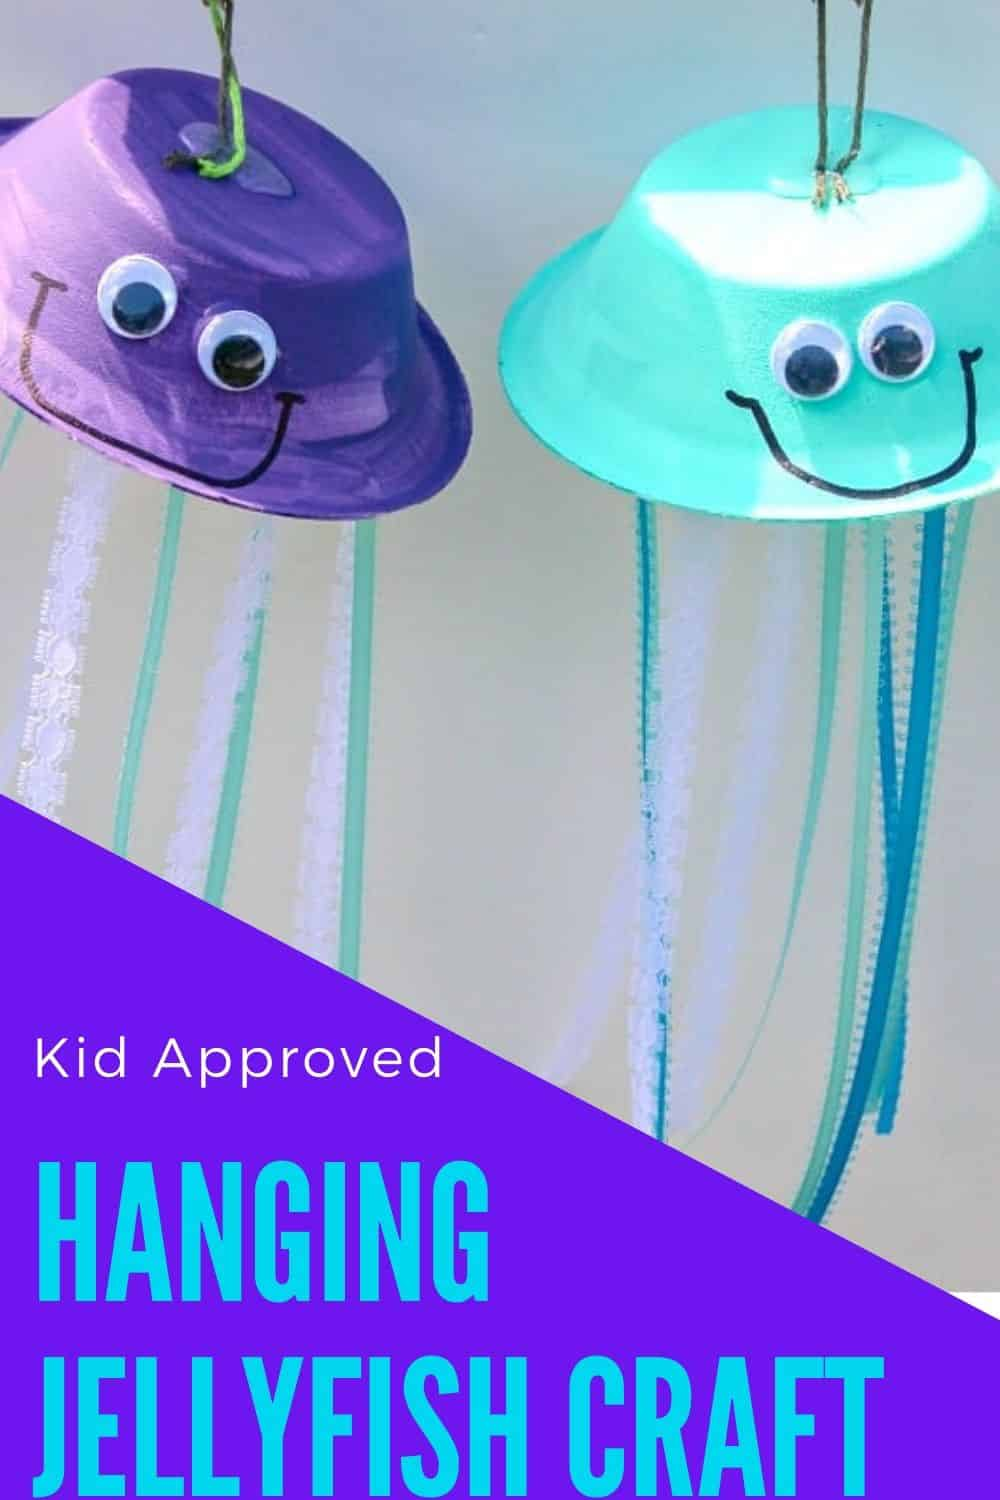 hanging jellyfish craft by Glue Sticks & Gum Drops? Your preschooler will love creating a unique hanging art piece featuring one of the most interesting ocean animals! All you need are paper bowls (plates would work, too), acrylic paint, assorted ribbons/yarn, googly eyes, a sharpie, paintbrushes, and a hot glue gun. Let them get creative with the painting and provide them several different ribbon colors to choose from. via @irishtwinsmom11